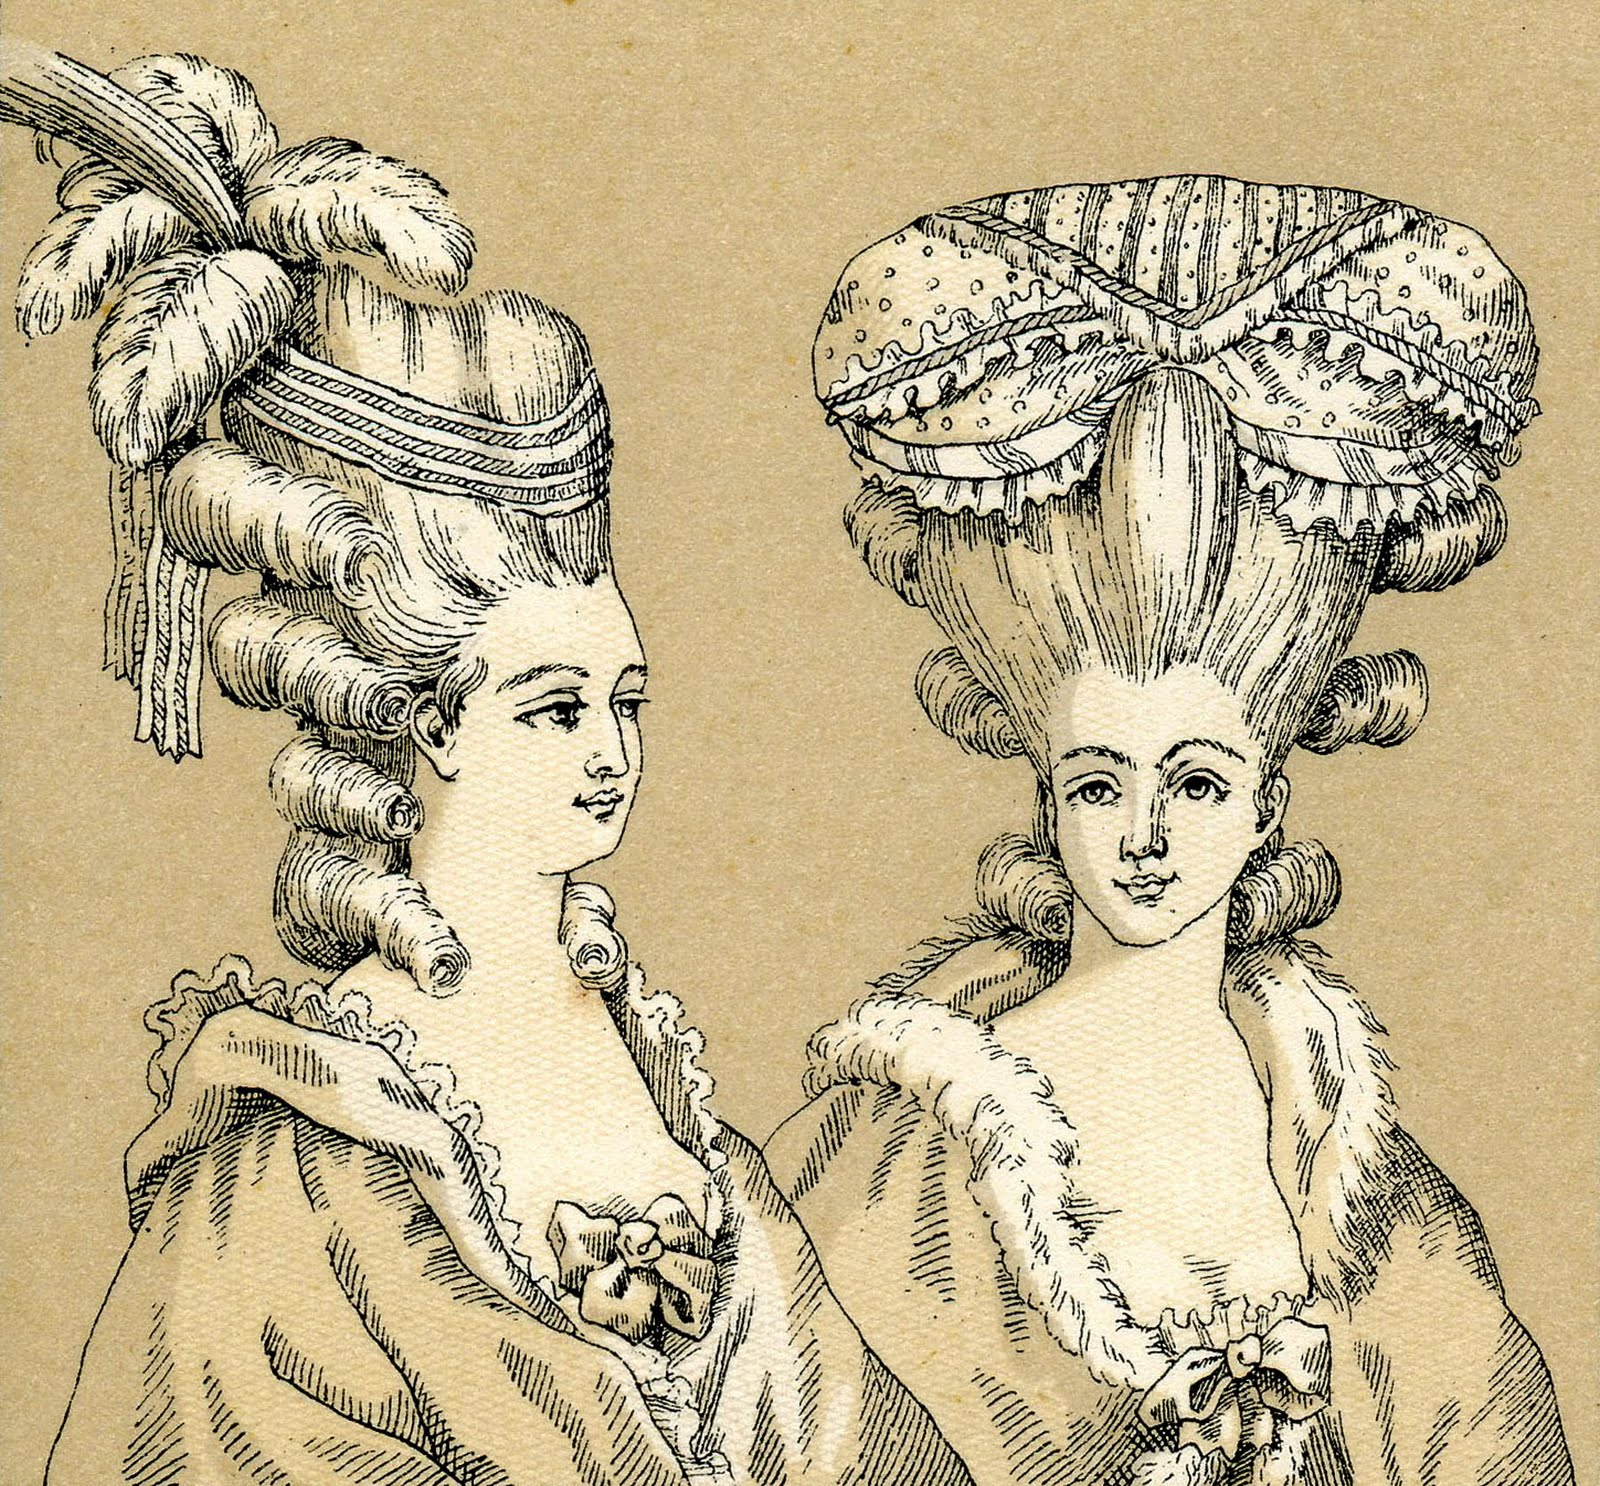 Vintage Graphics - Marie Antoinette's Friends - The Graphics Fairy: thegraphicsfairy.com/vintage-graphics-marie-antoinettes-friends